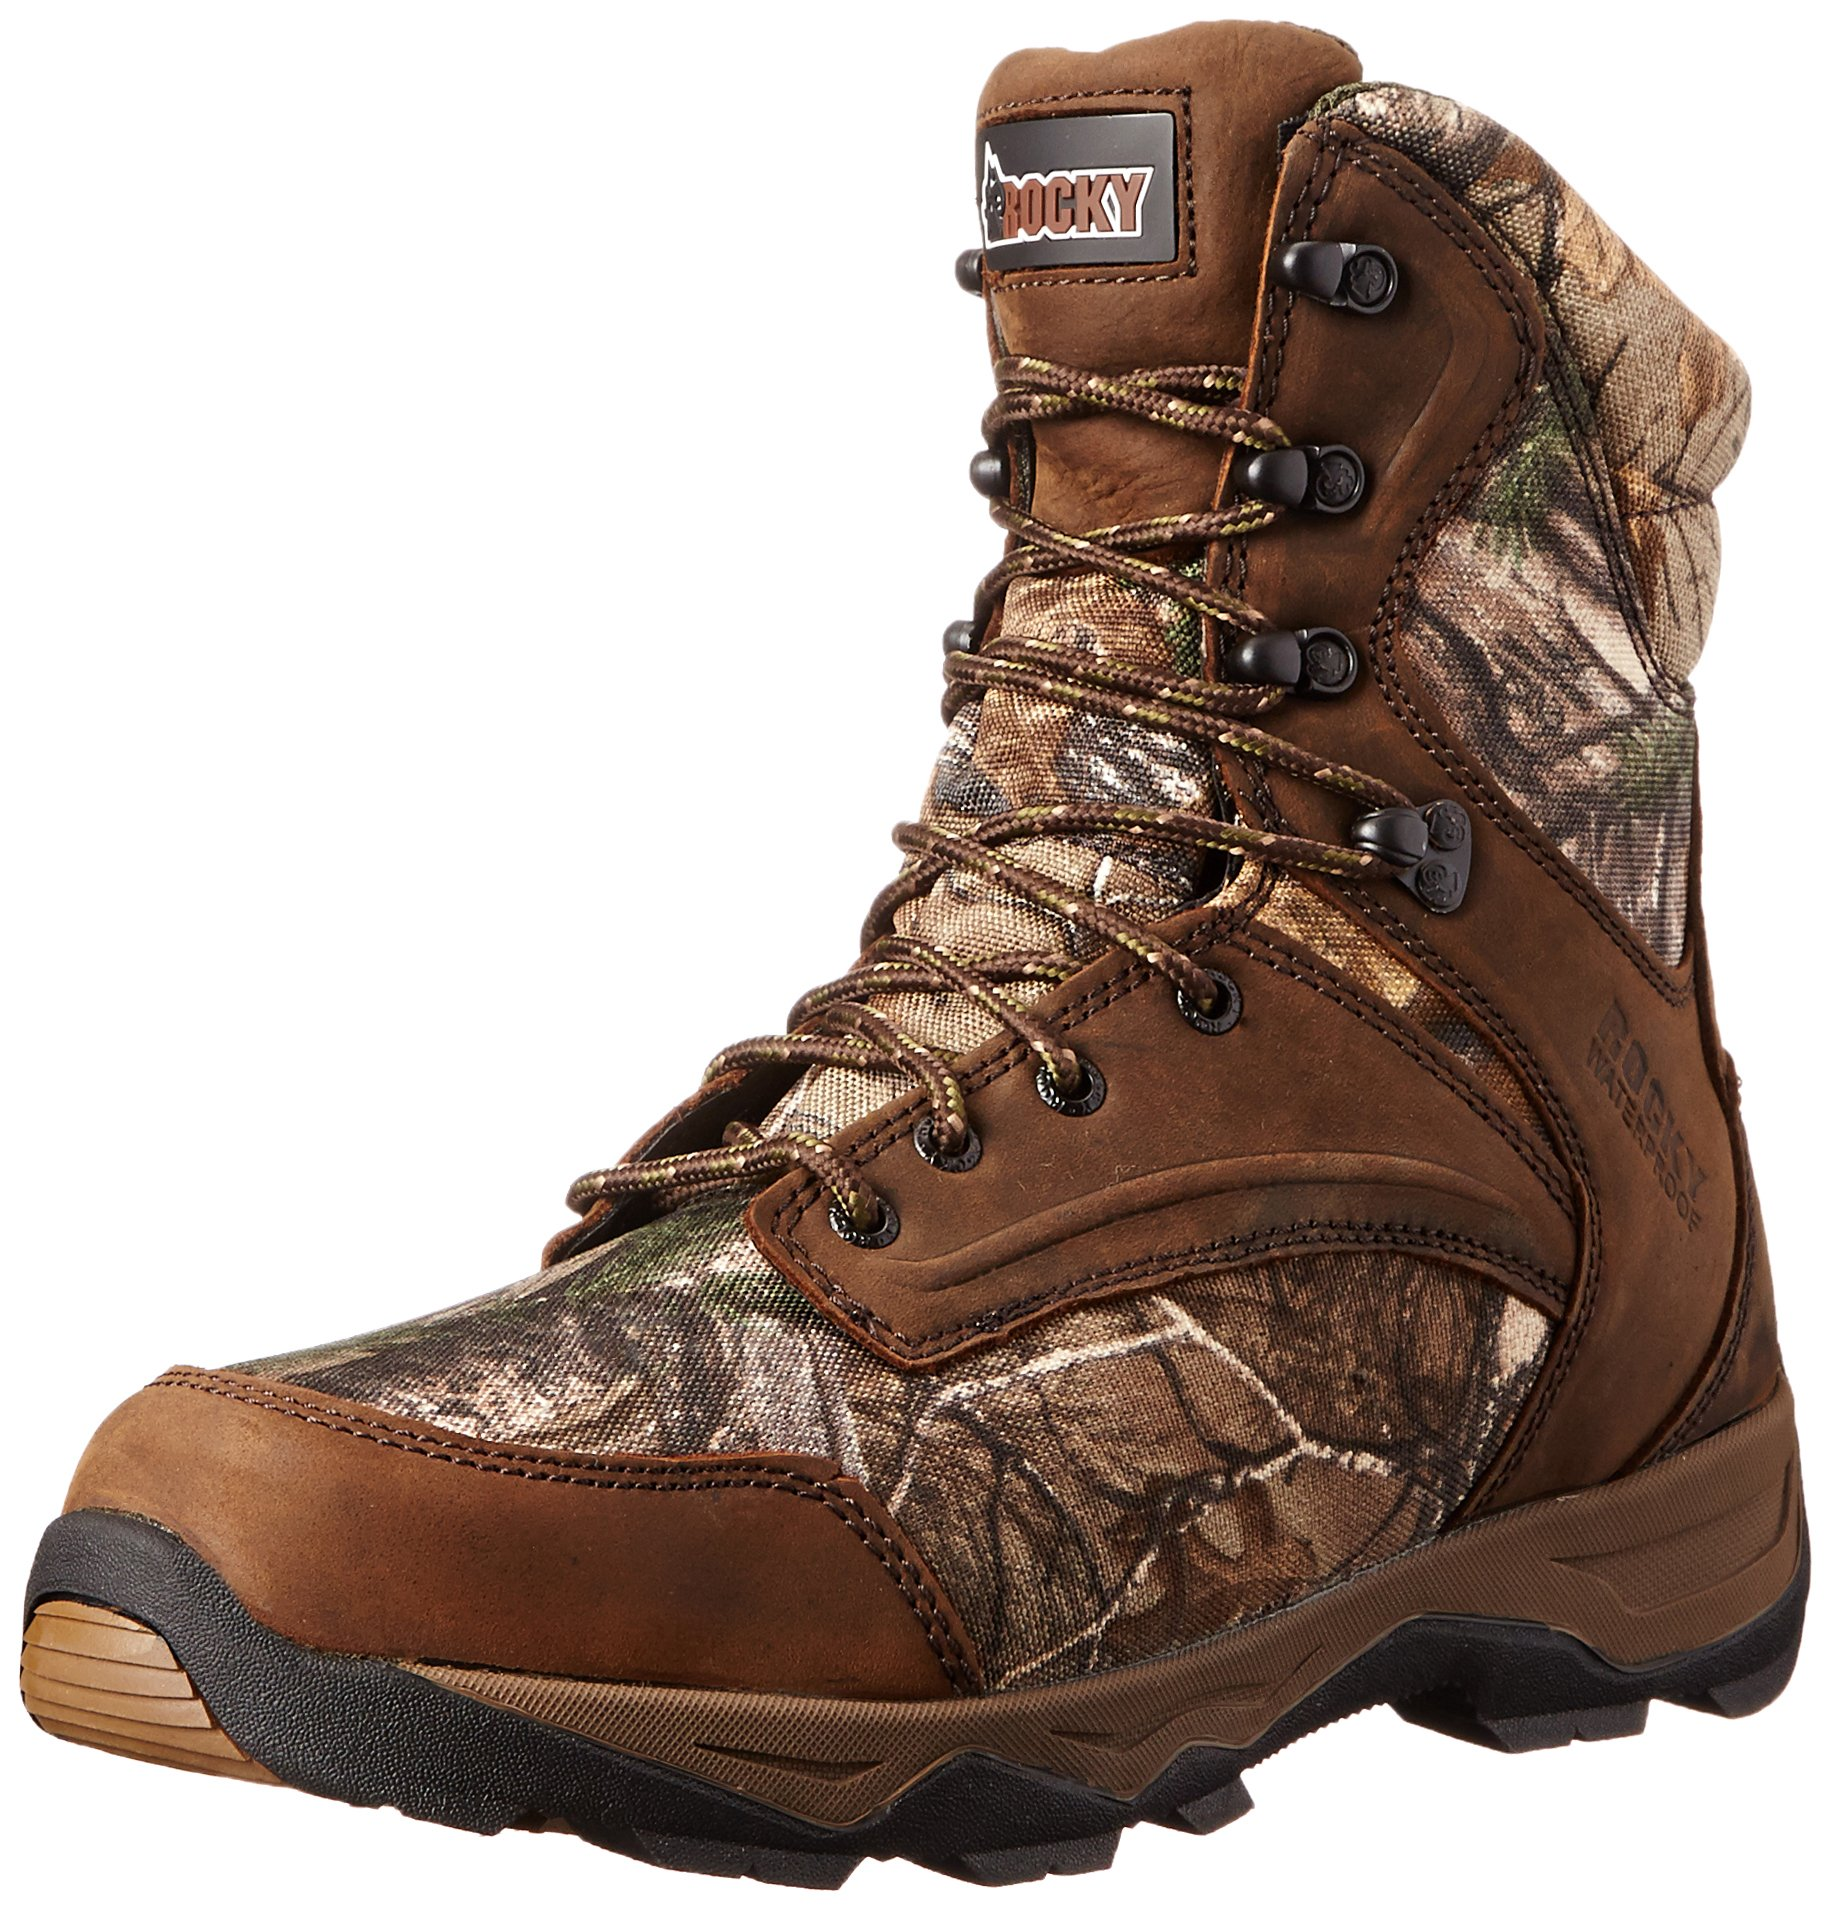 Rocky Men's RKS0227 Boot, Realtree Xtra Camouflage, 8.5 M US by Rocky